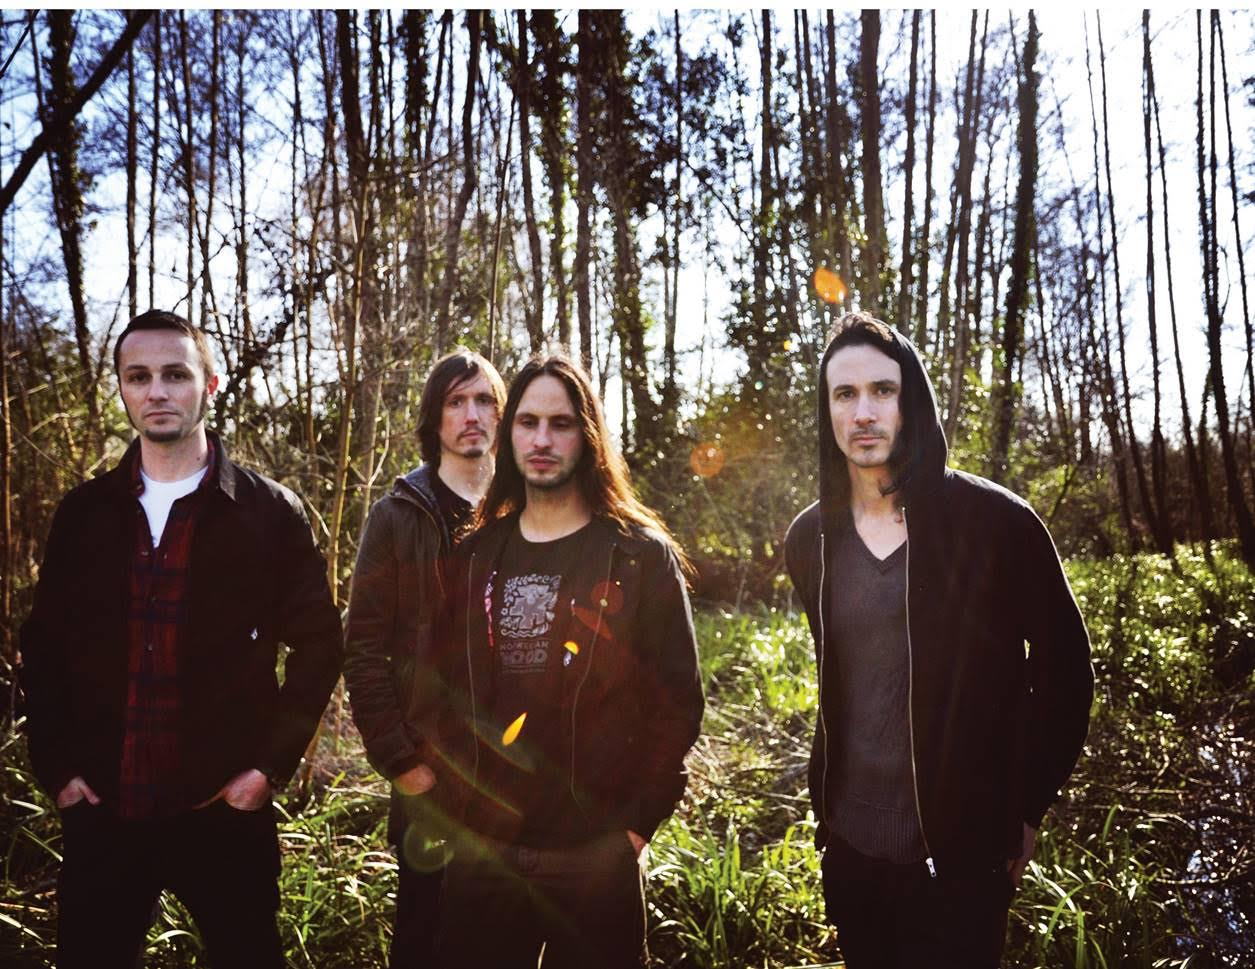 Fnrech heavy-metal act Gojira will perform at the Rapids Theatre on May 16.